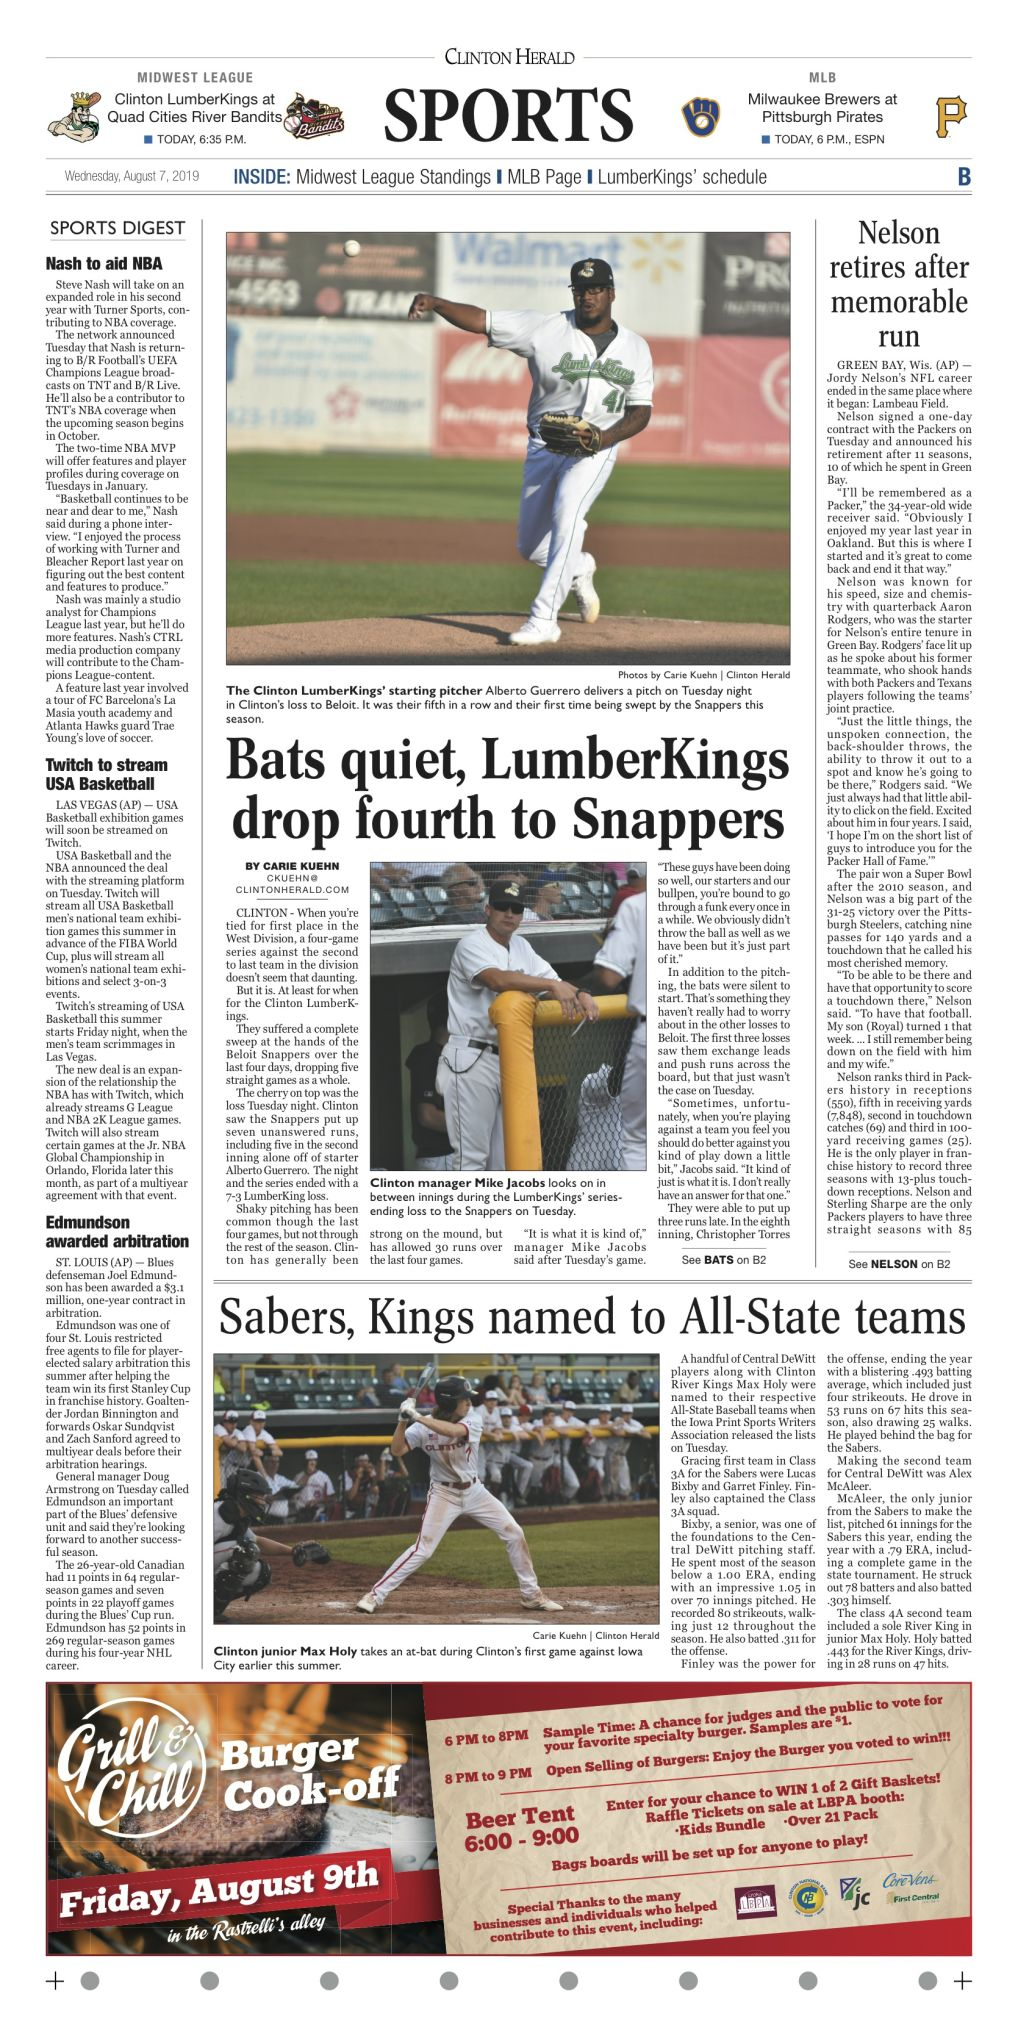 The sports page for August 7, 2019